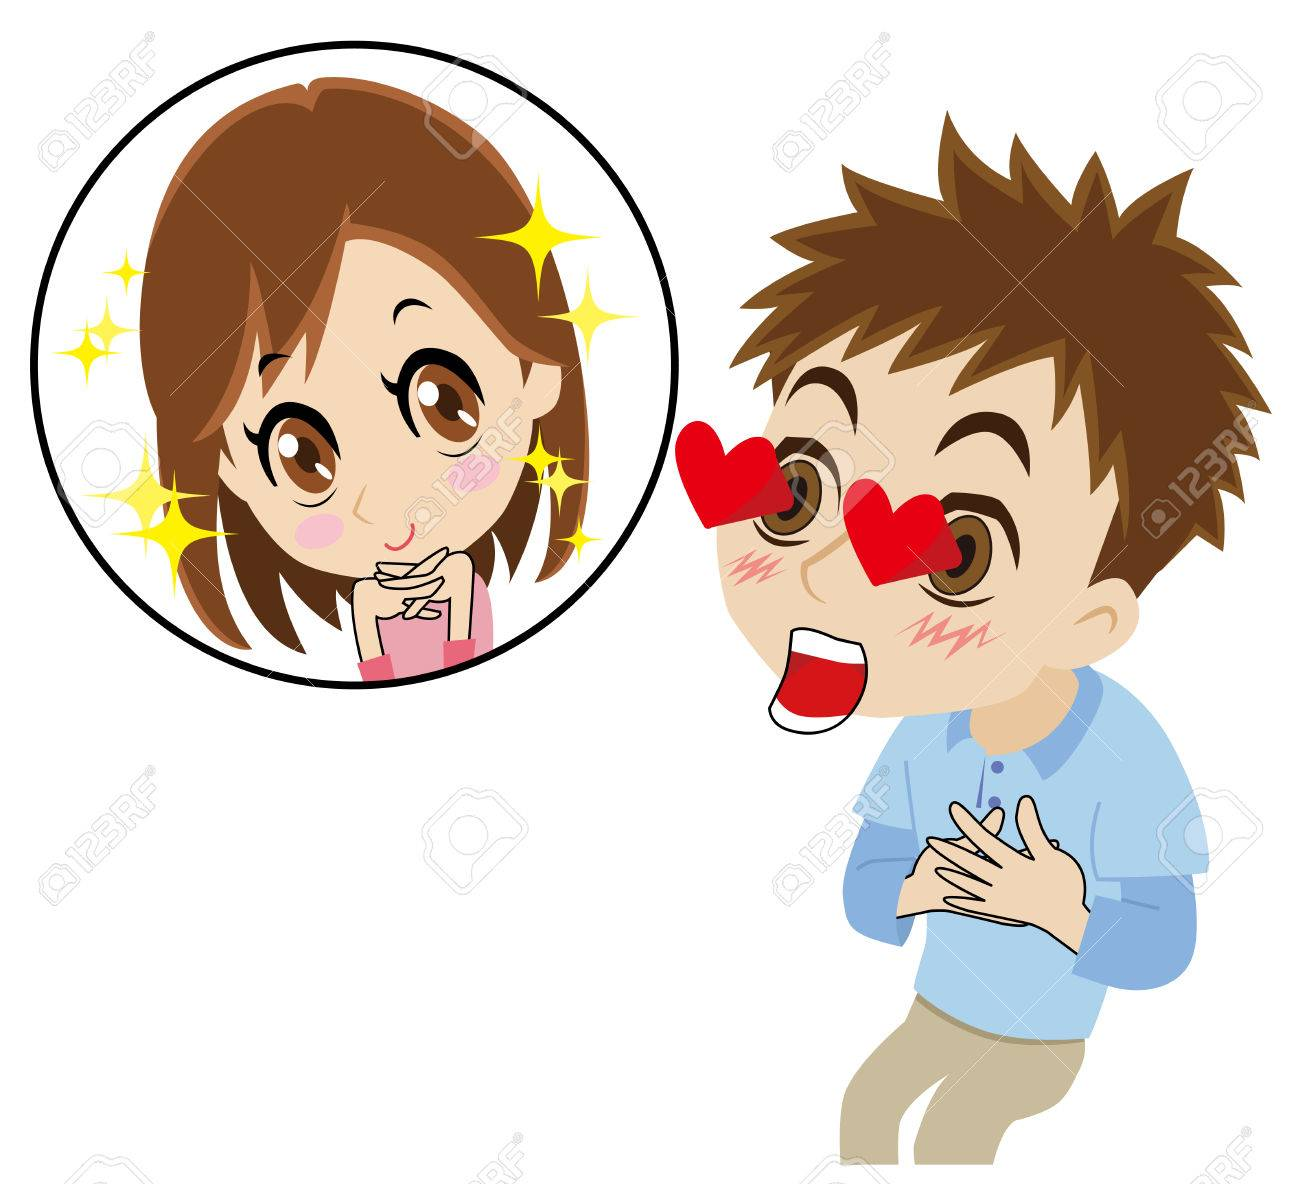 Man To Fall In Love With At First Sight Royalty Free Cliparts, Vectors, And  Stock Illustration. Image 37241756.